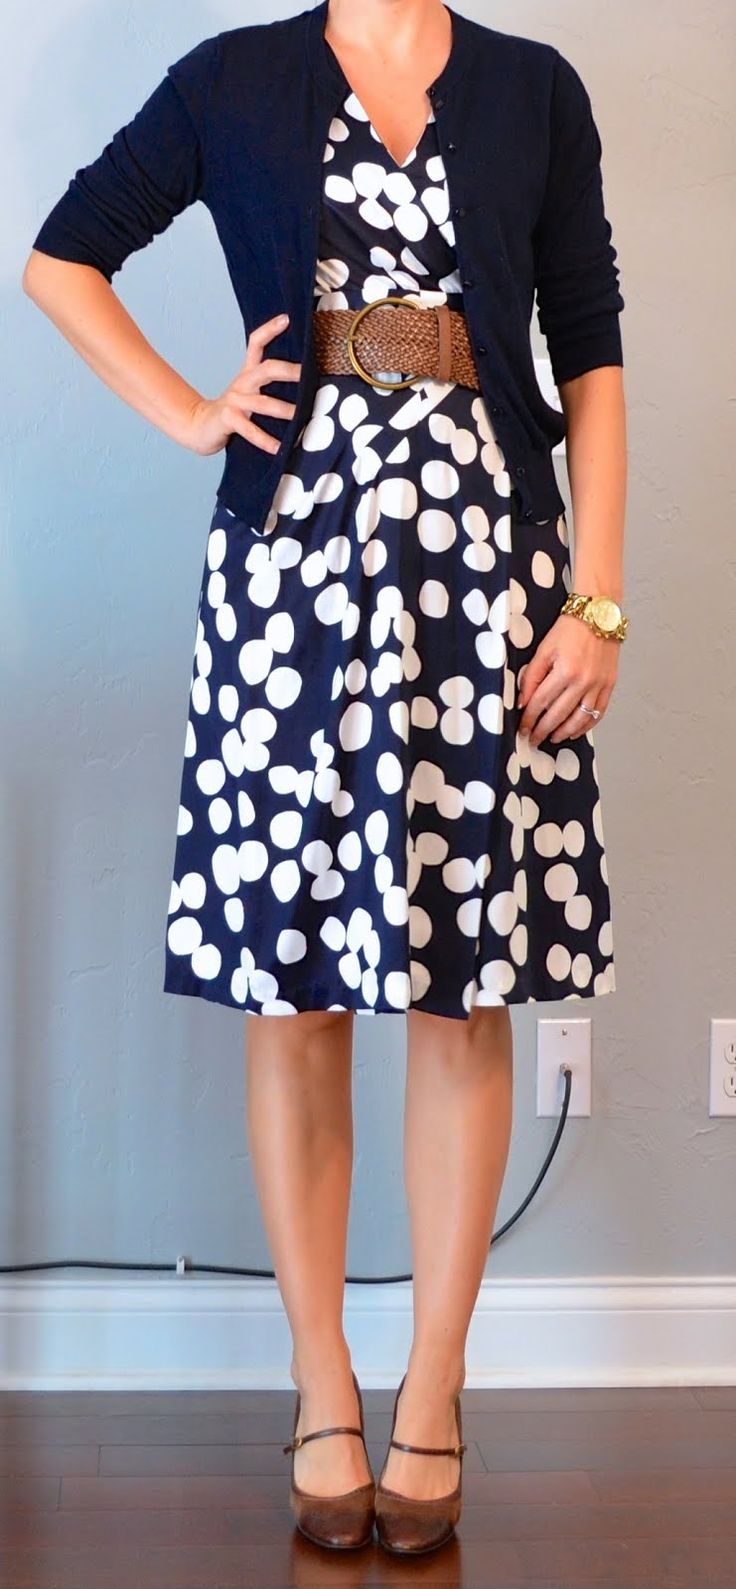 navy & white polka-dot dress, navy cardigan, wide woven belt